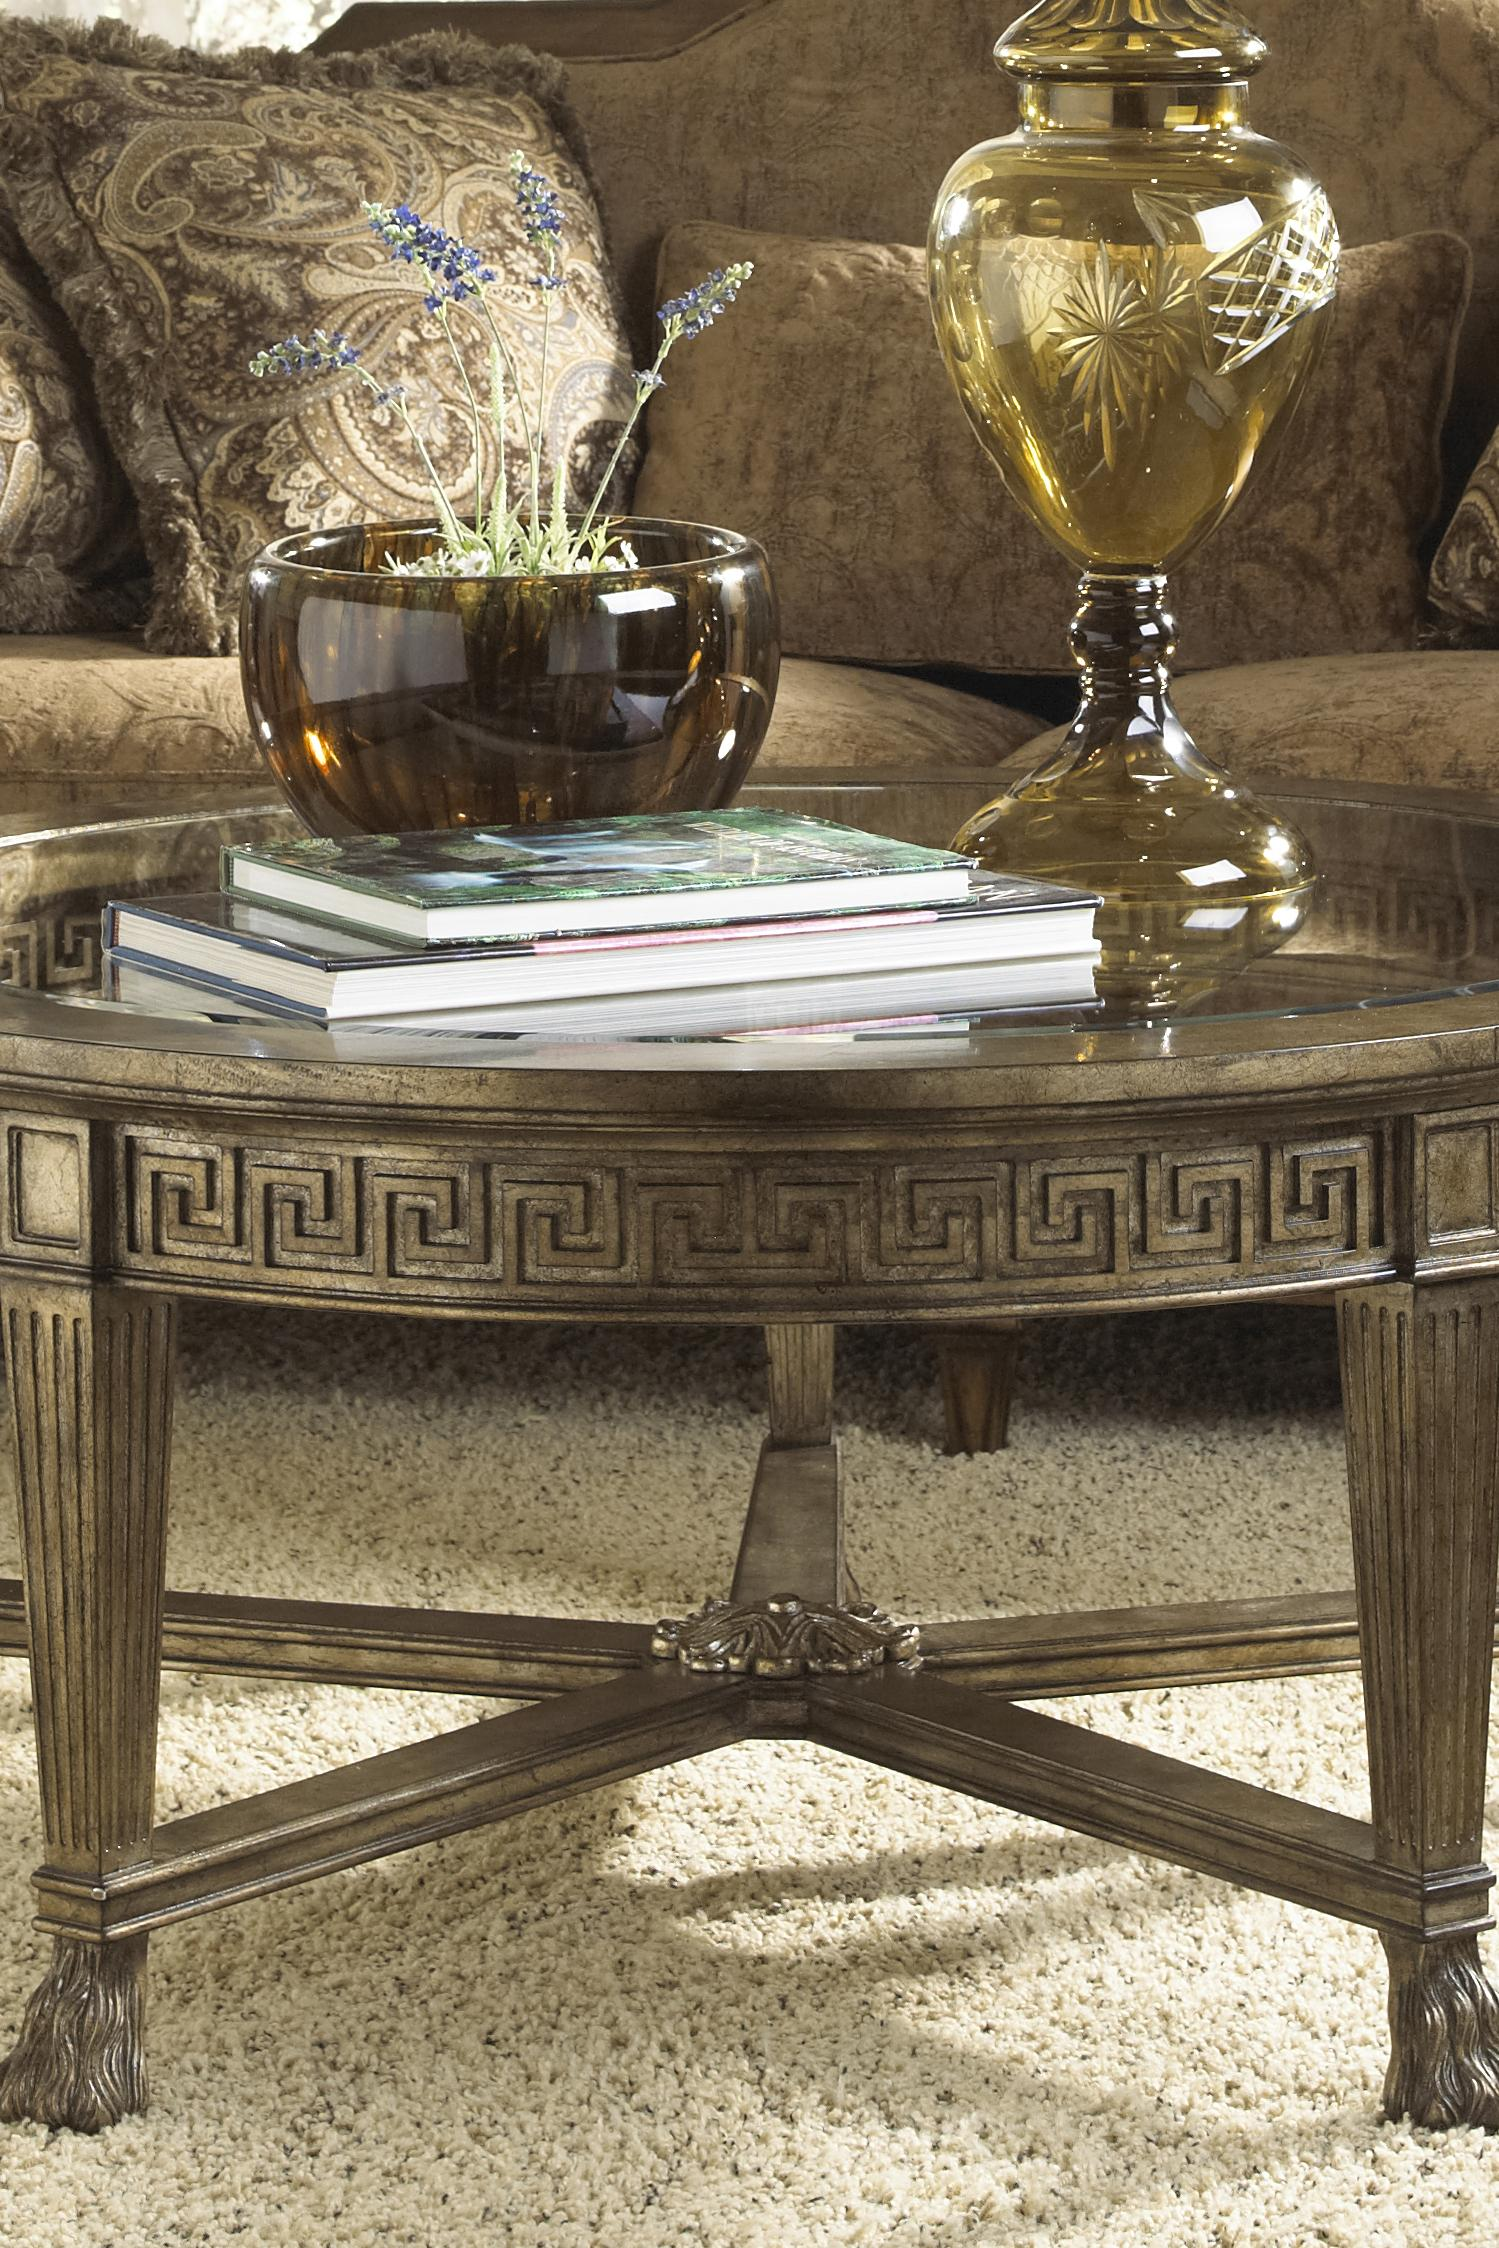 Charming Fine Furniture Design Belvedere Grecian Style Round Coffee Table With Glass  Top   Design Interiors   Cocktail/Coffee Tables